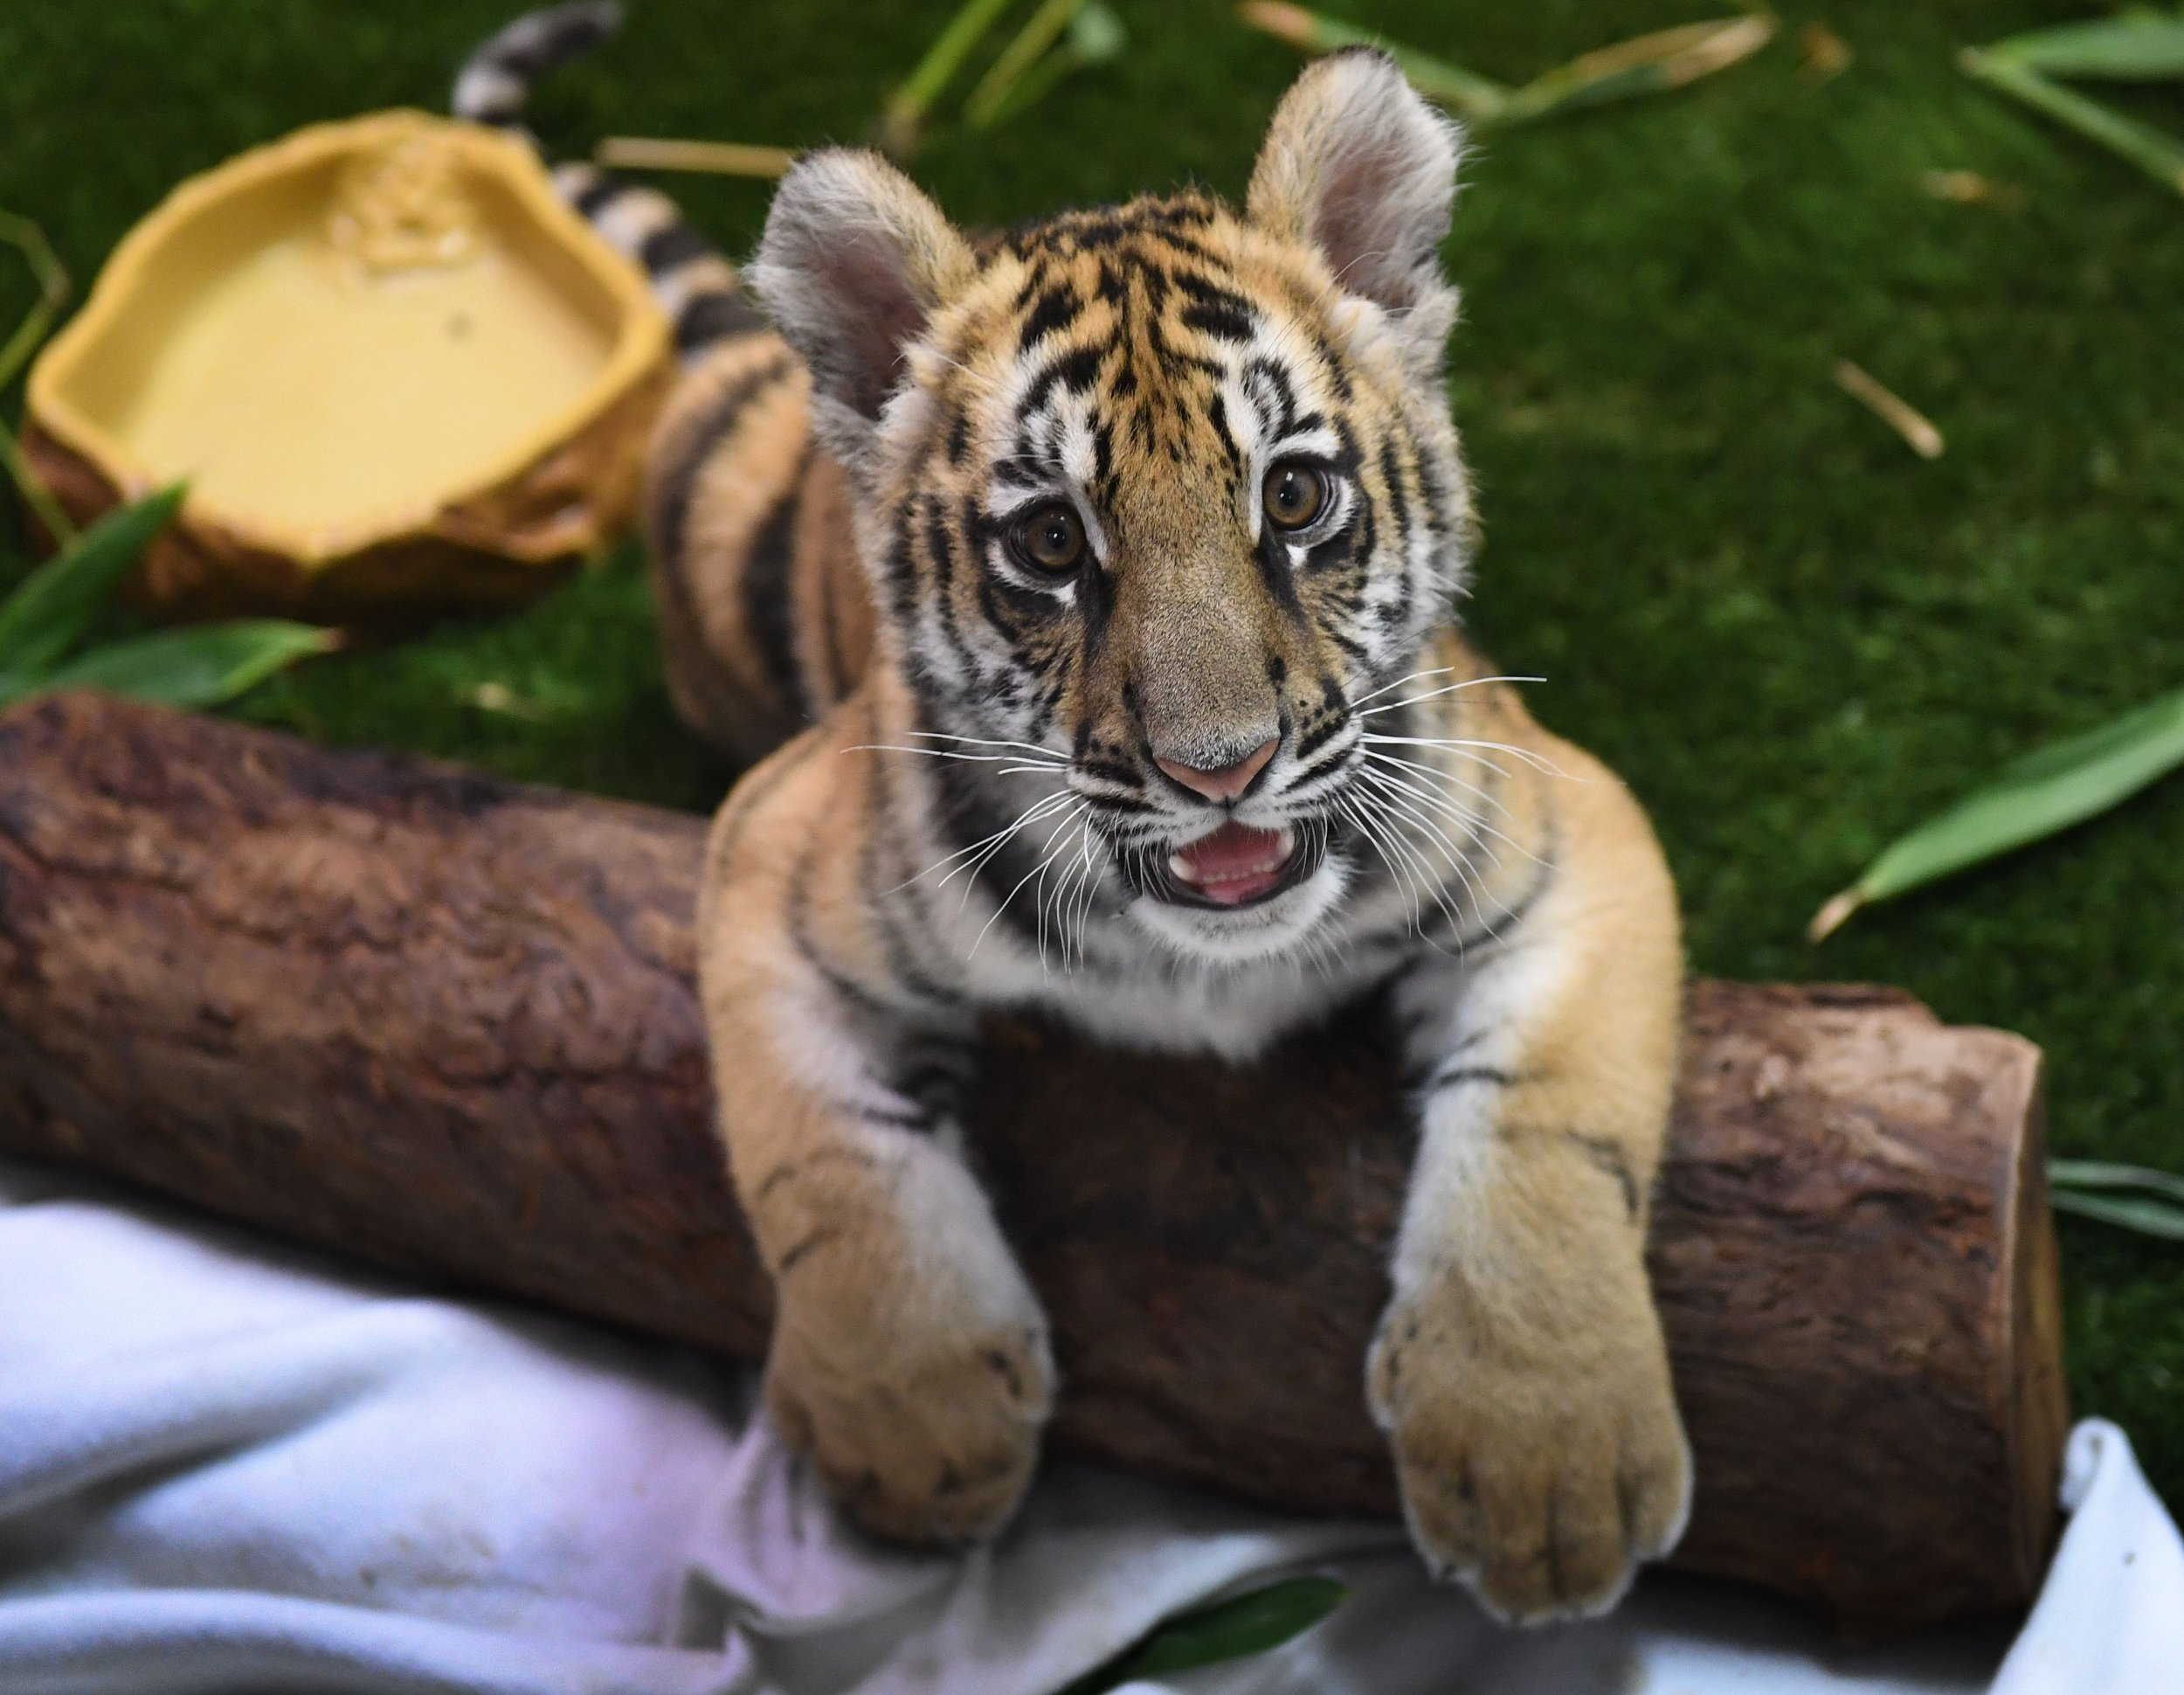 california teenager who smuggled tiger cub from mexico sentenced to